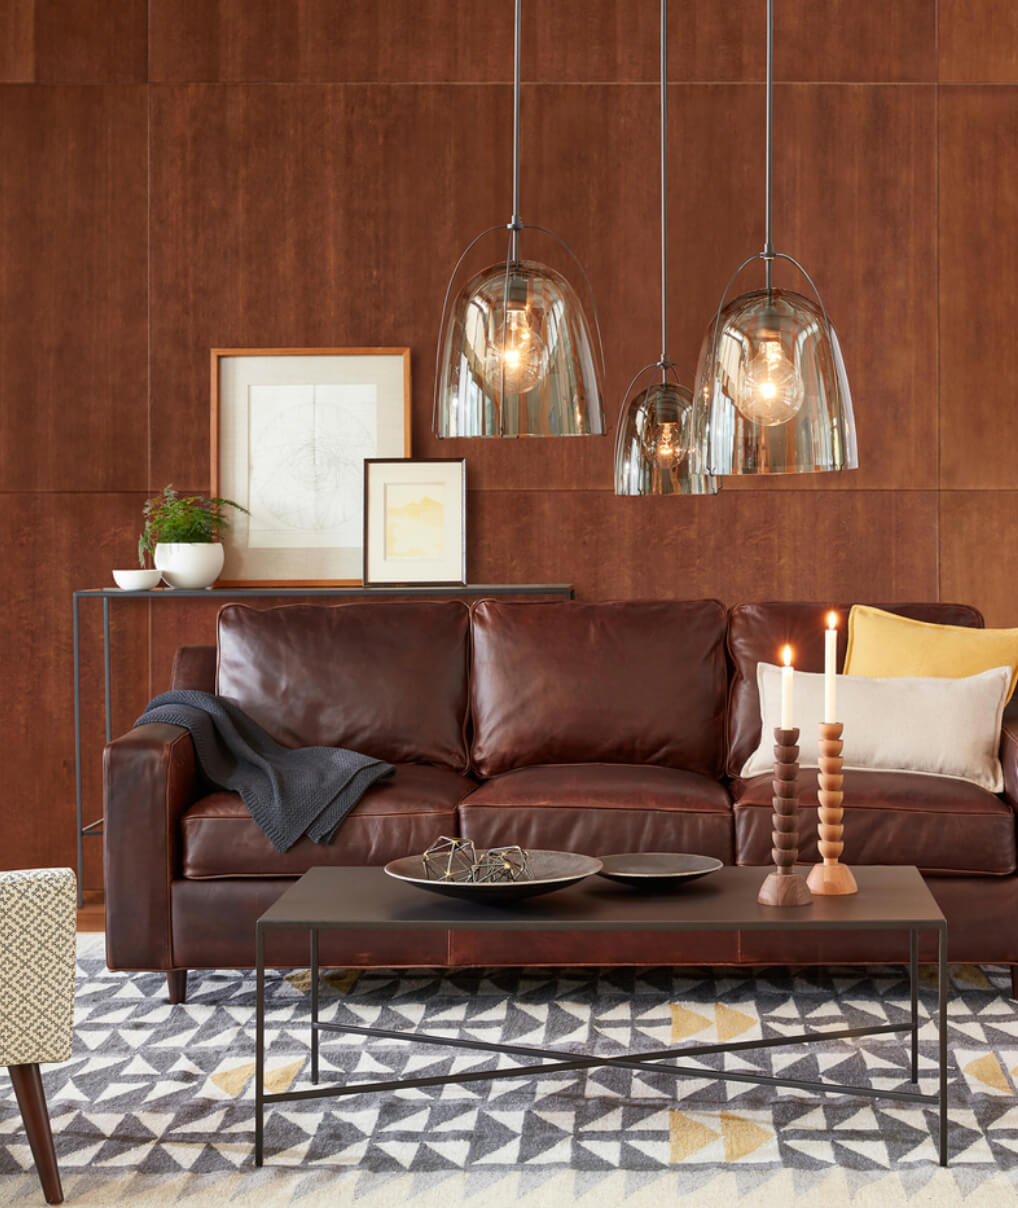 10 Nice Carpeting Ideas For Living Room 12 living room rug ideas that will change everything 2020